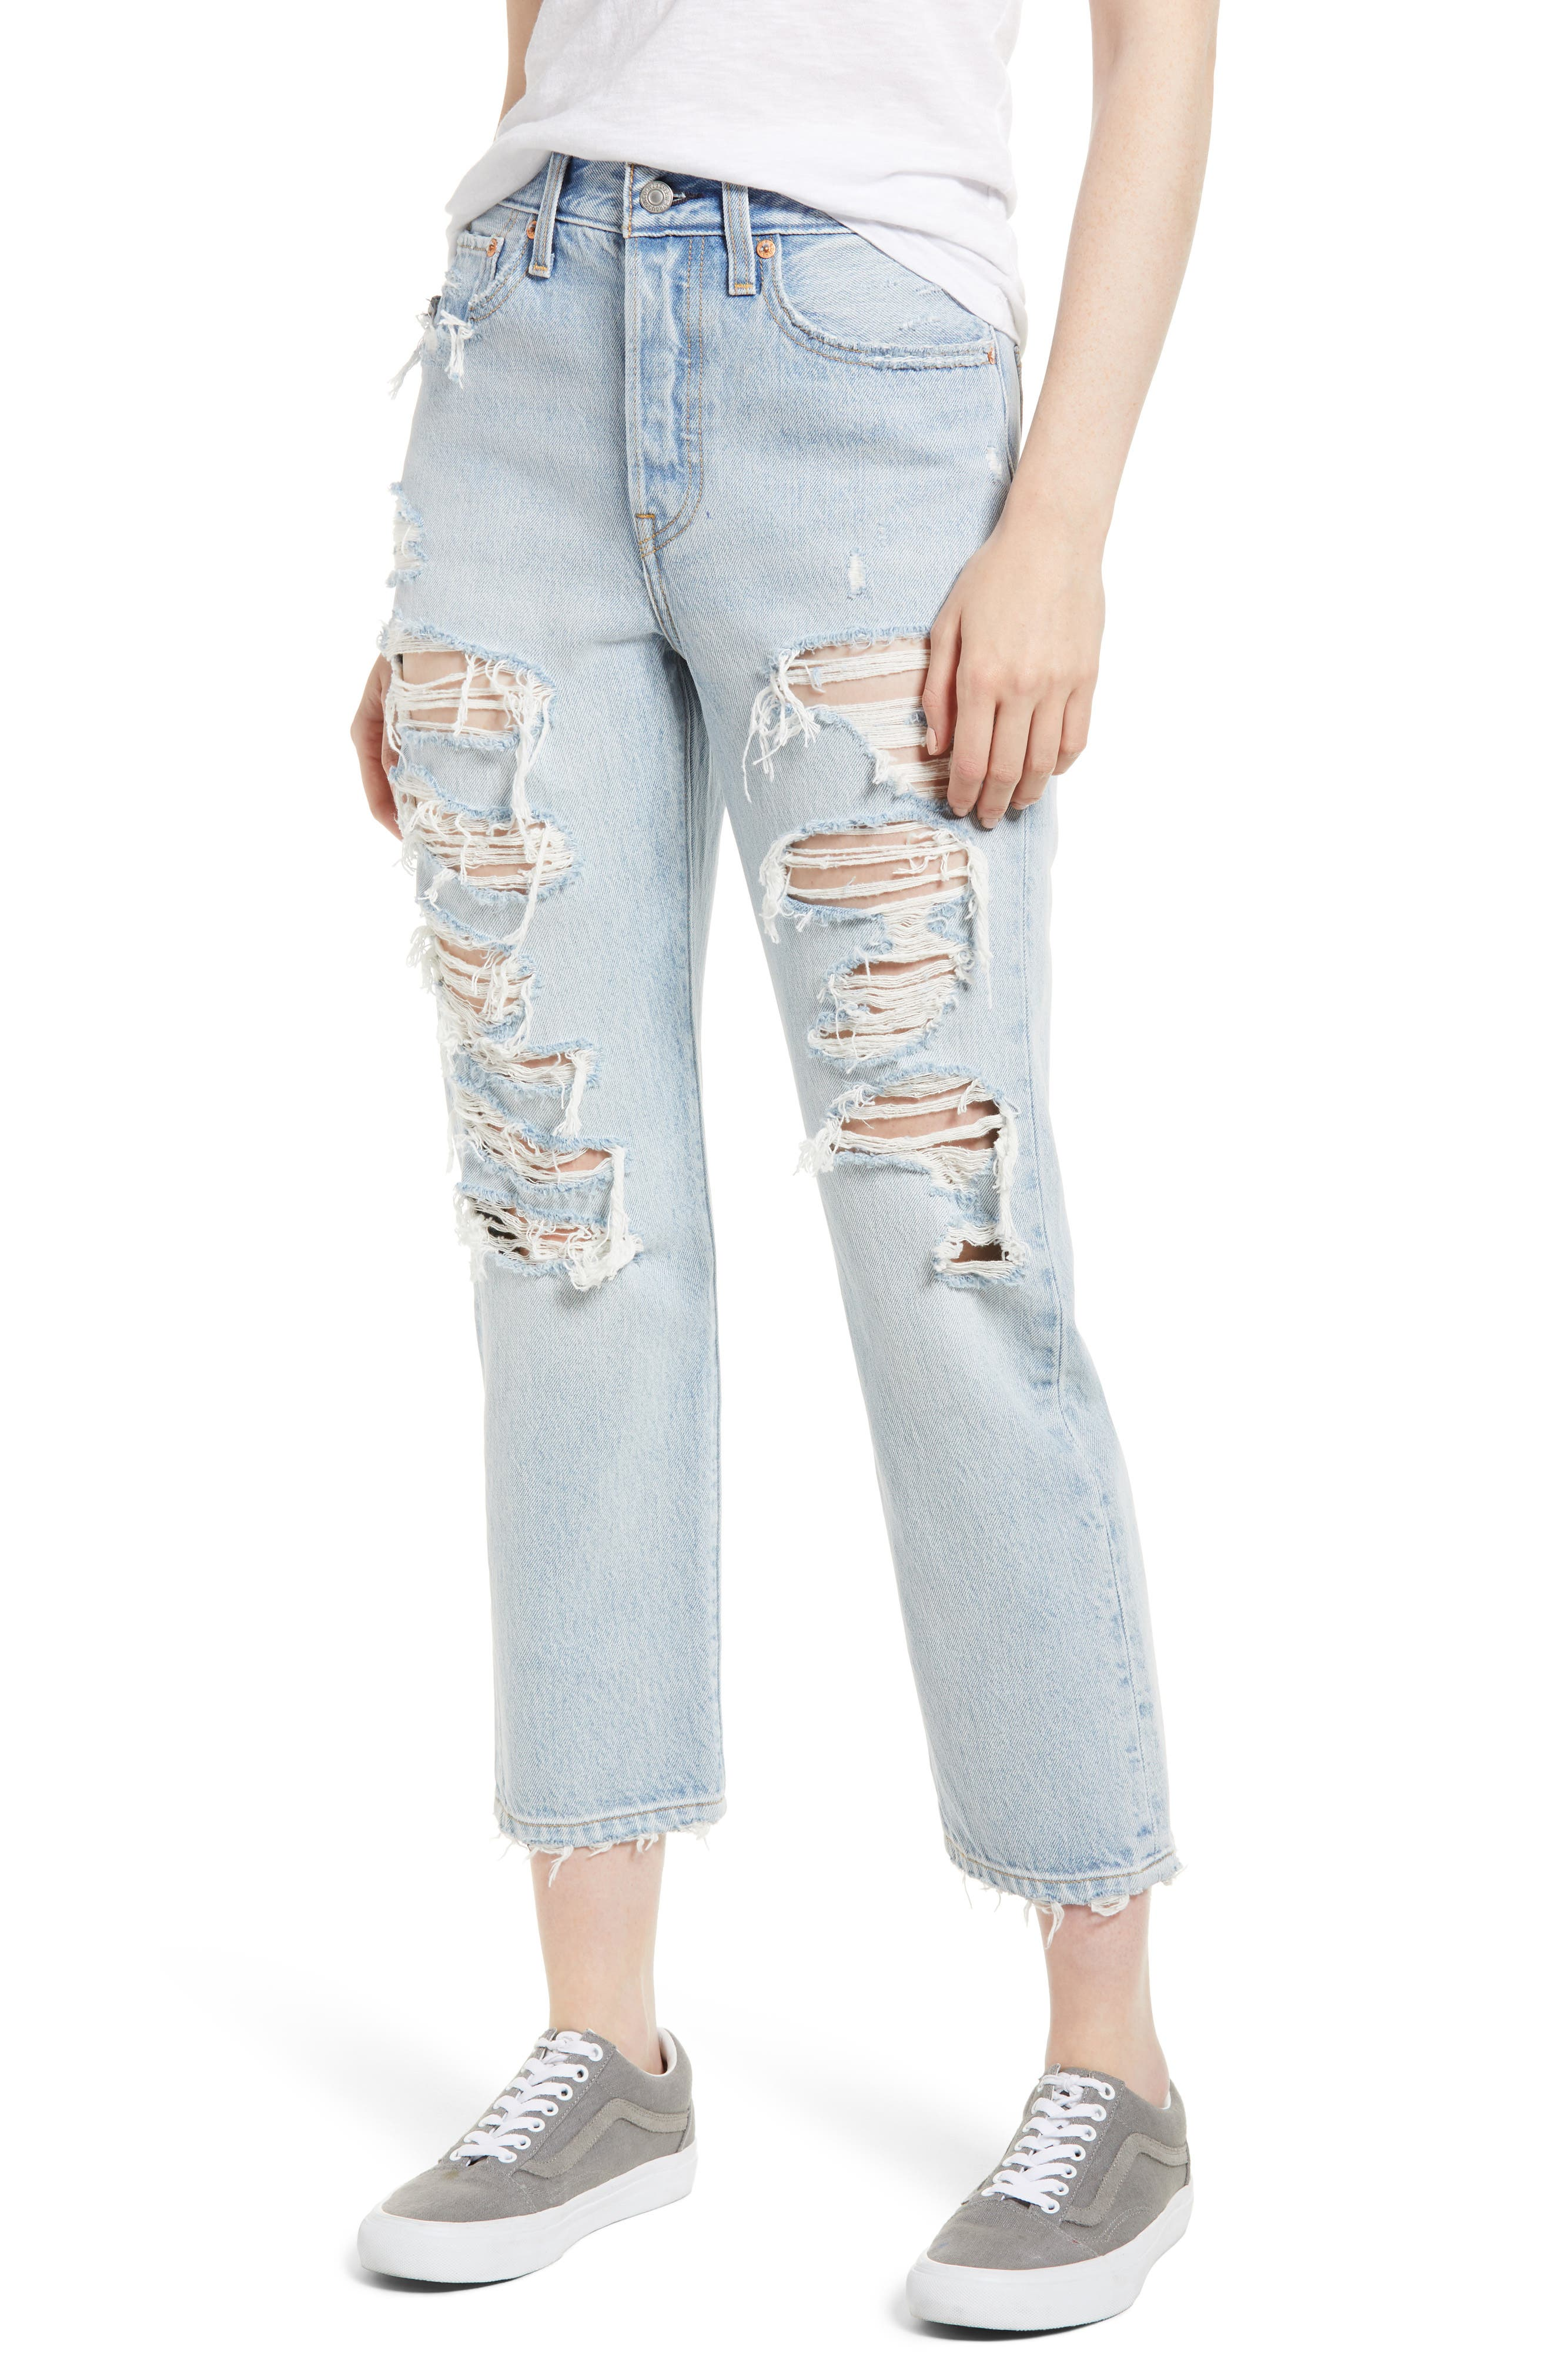 Wedgie High Waist Ripped Straight Jeans,                         Main,                         color, Light Blue 1